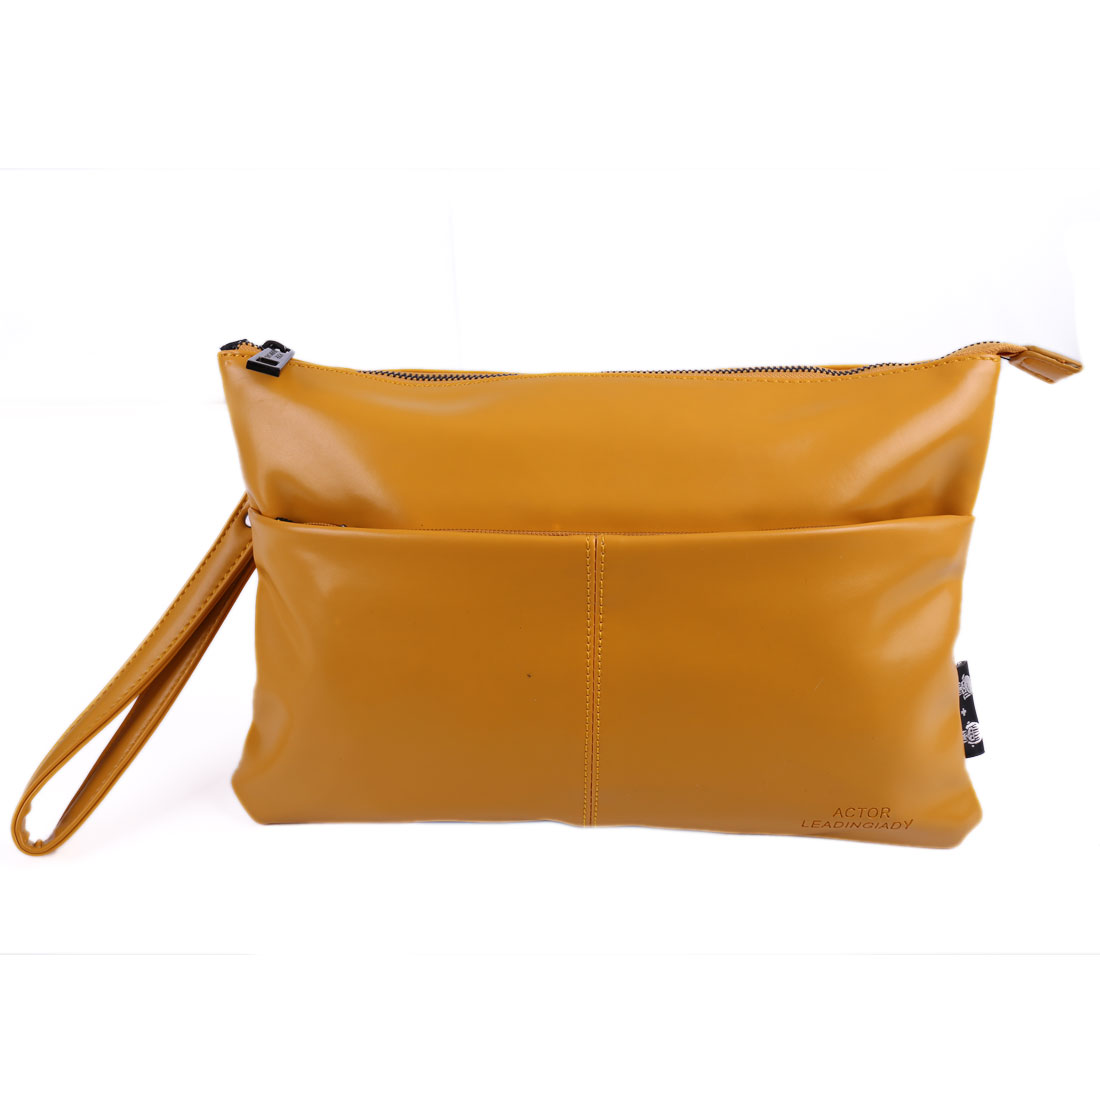 Woman Faux Leather Zipper Closure Handbang Shoulderbag Earth Yellow w Strap